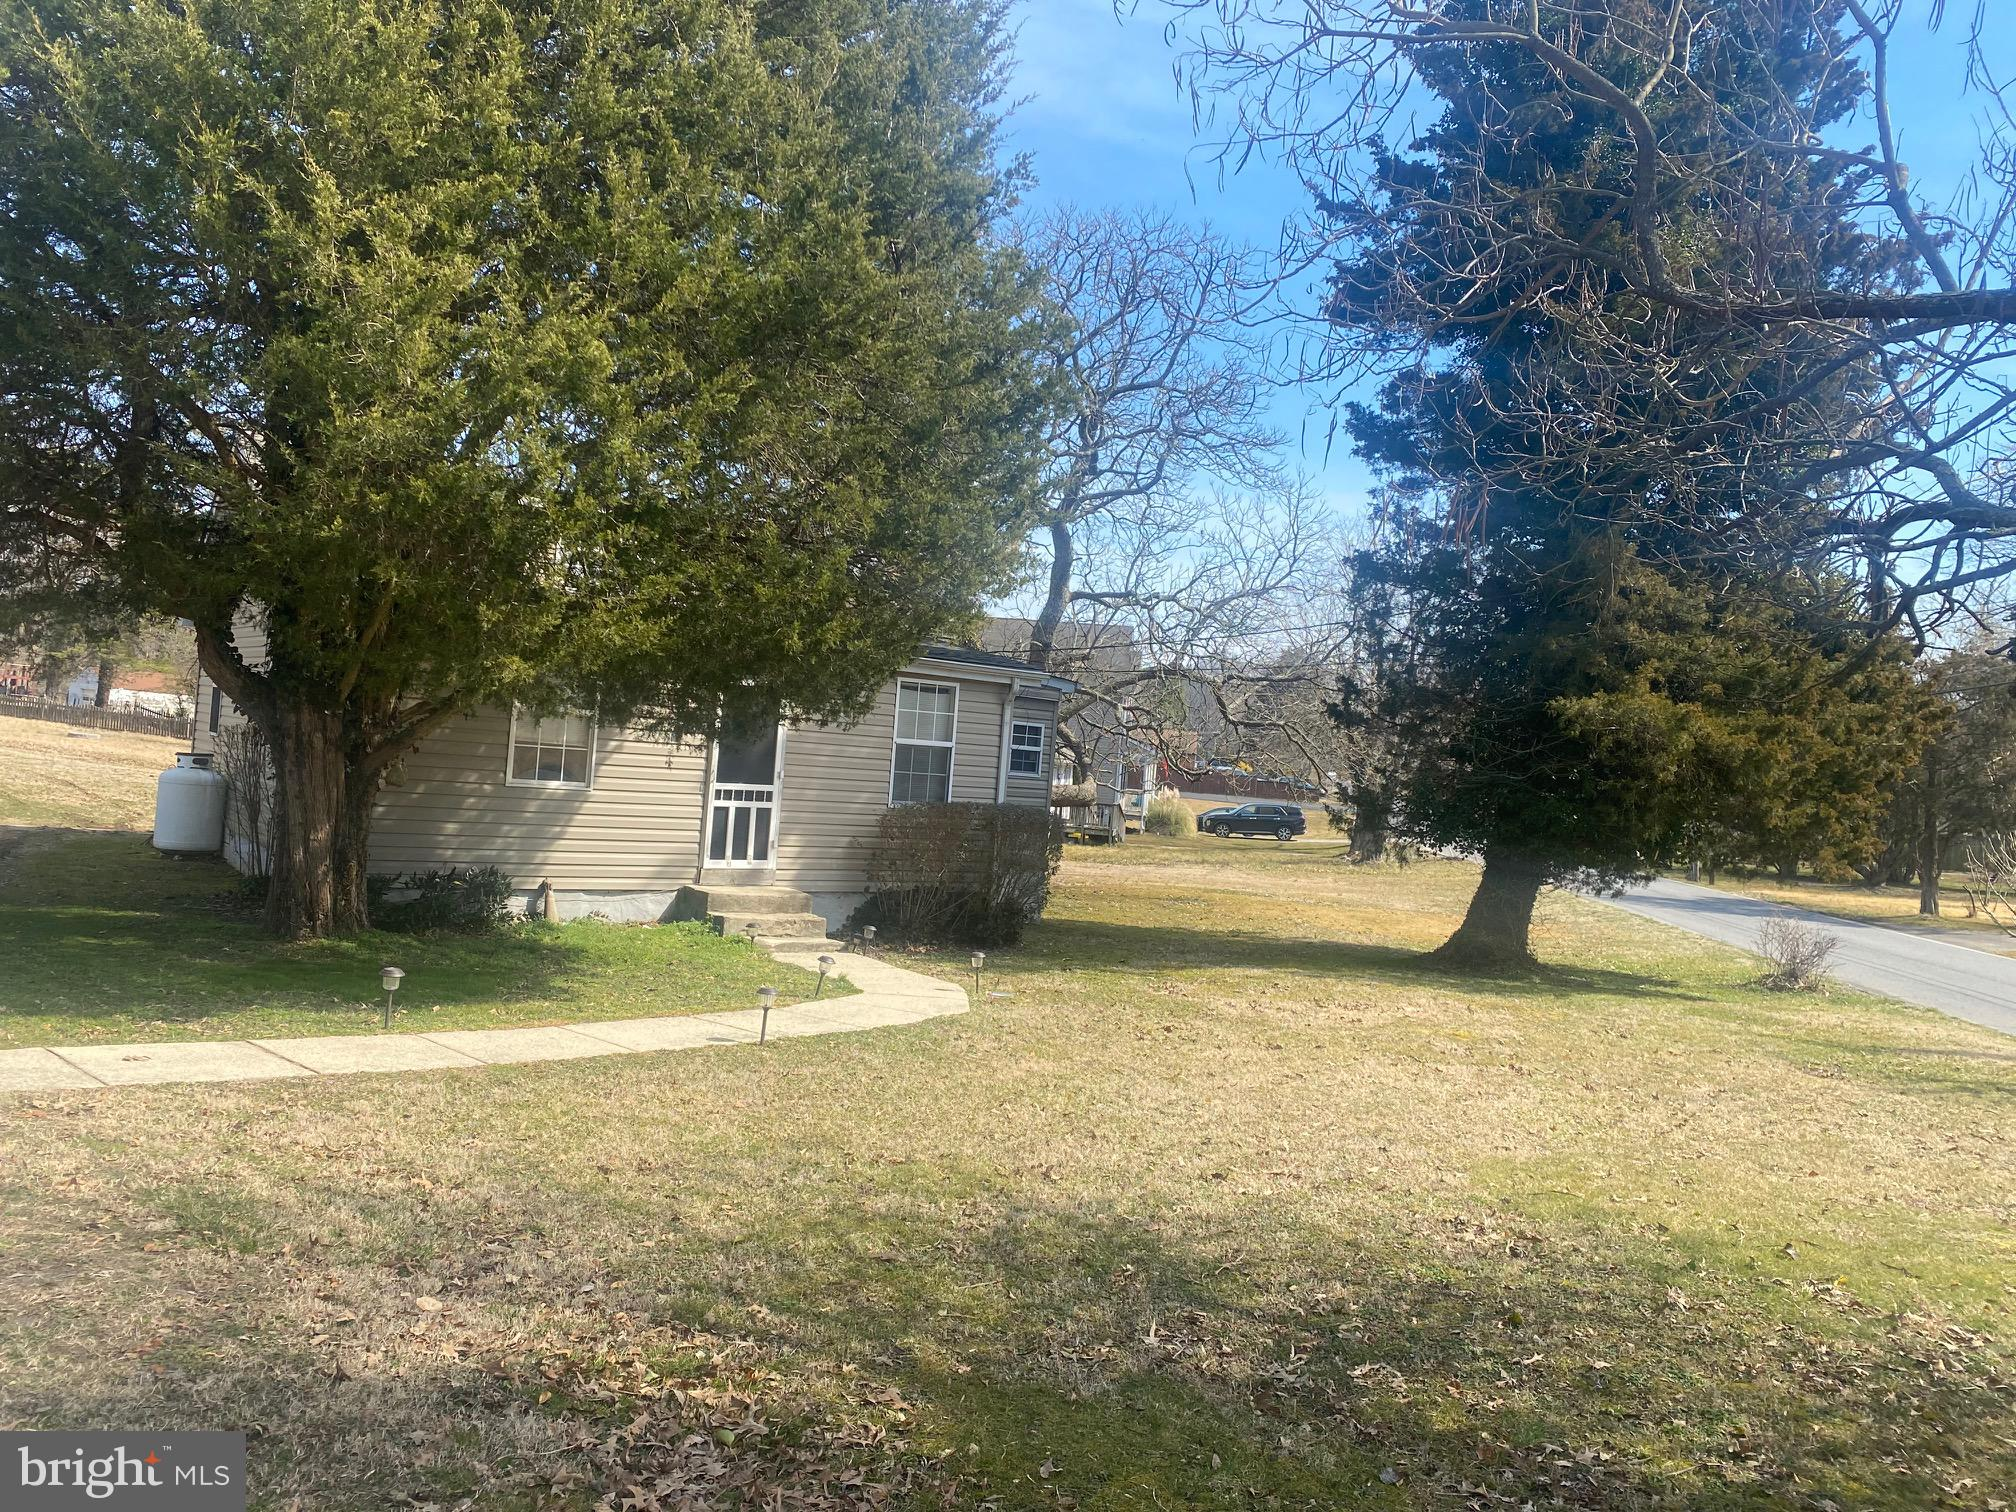 300 Forest Beach Rd, Annapolis, MD, 21409